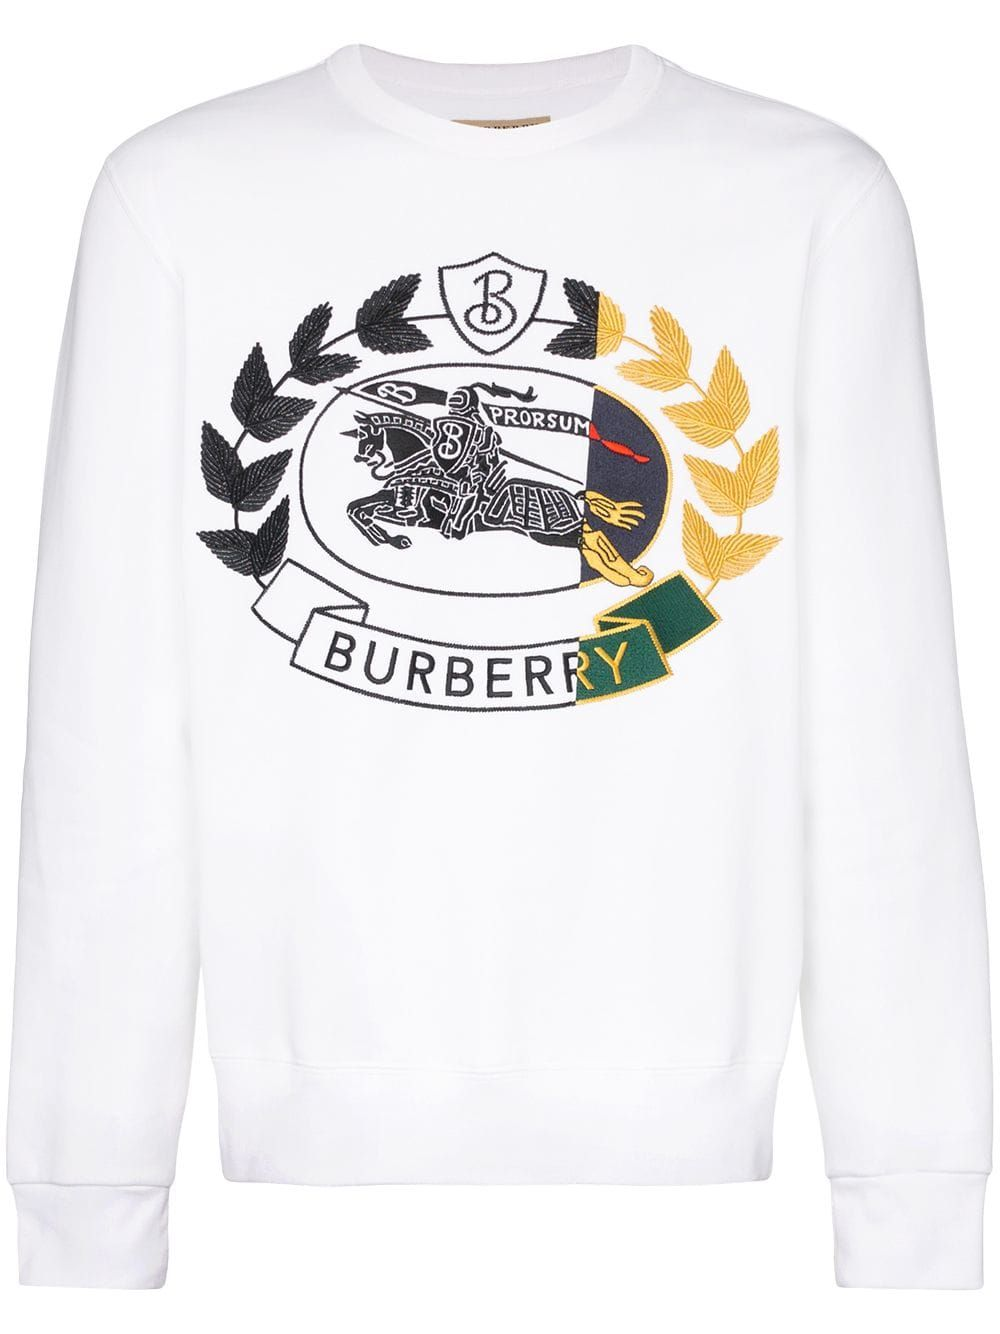 Burberry Burberry Logo Embroidered Jumper White Burberry Cloth Sweatshirts Logo Embroidered Burberry [ 1334 x 1000 Pixel ]